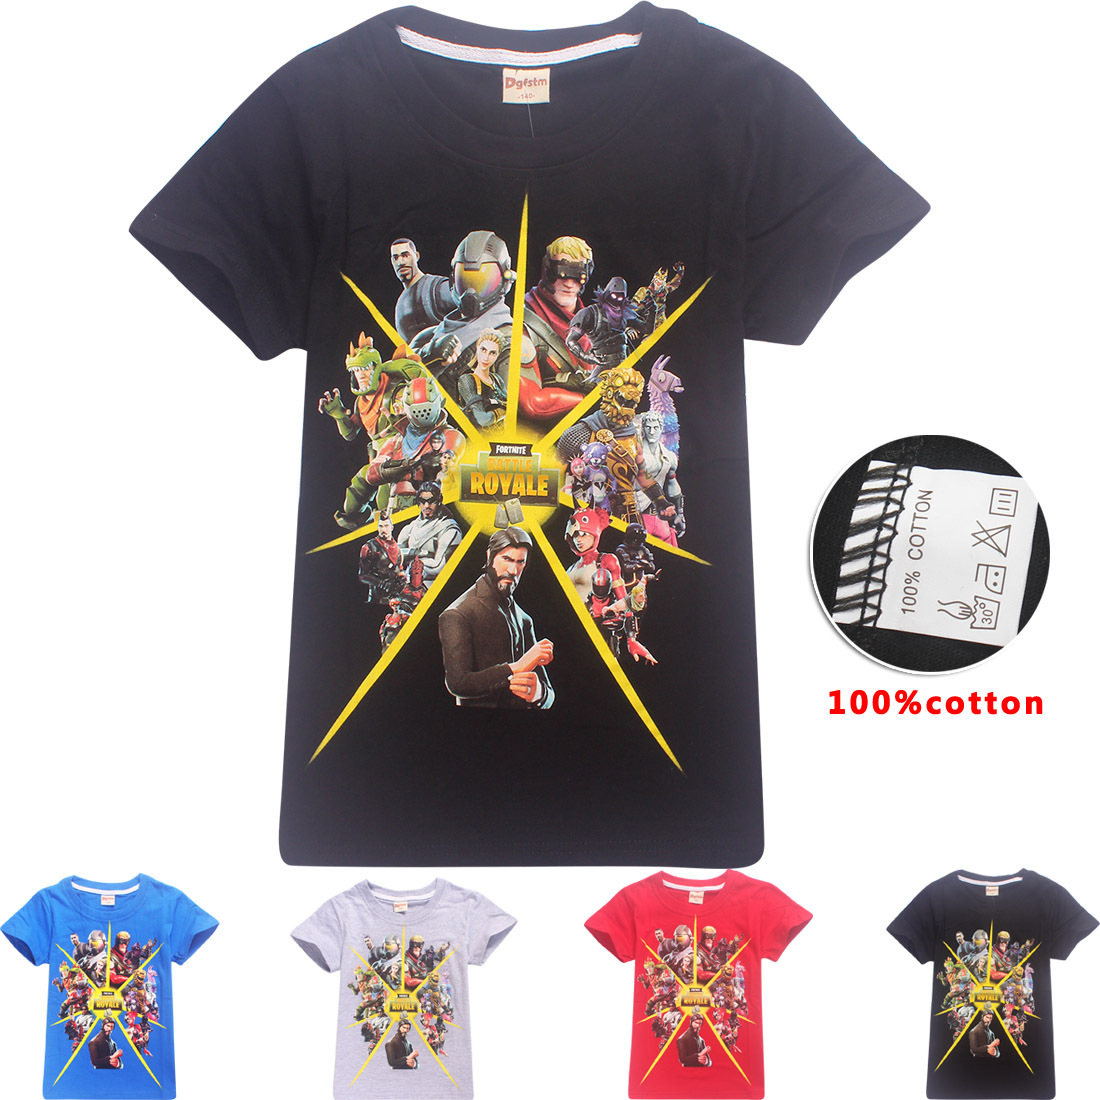 Z&Y 6-14Years Tiny Cottons 2018 Summer Fortnite Shirt Kids Shirts Boys T-shirt Teenage Clothes Teen Titans Go Funny Tshirt Nova